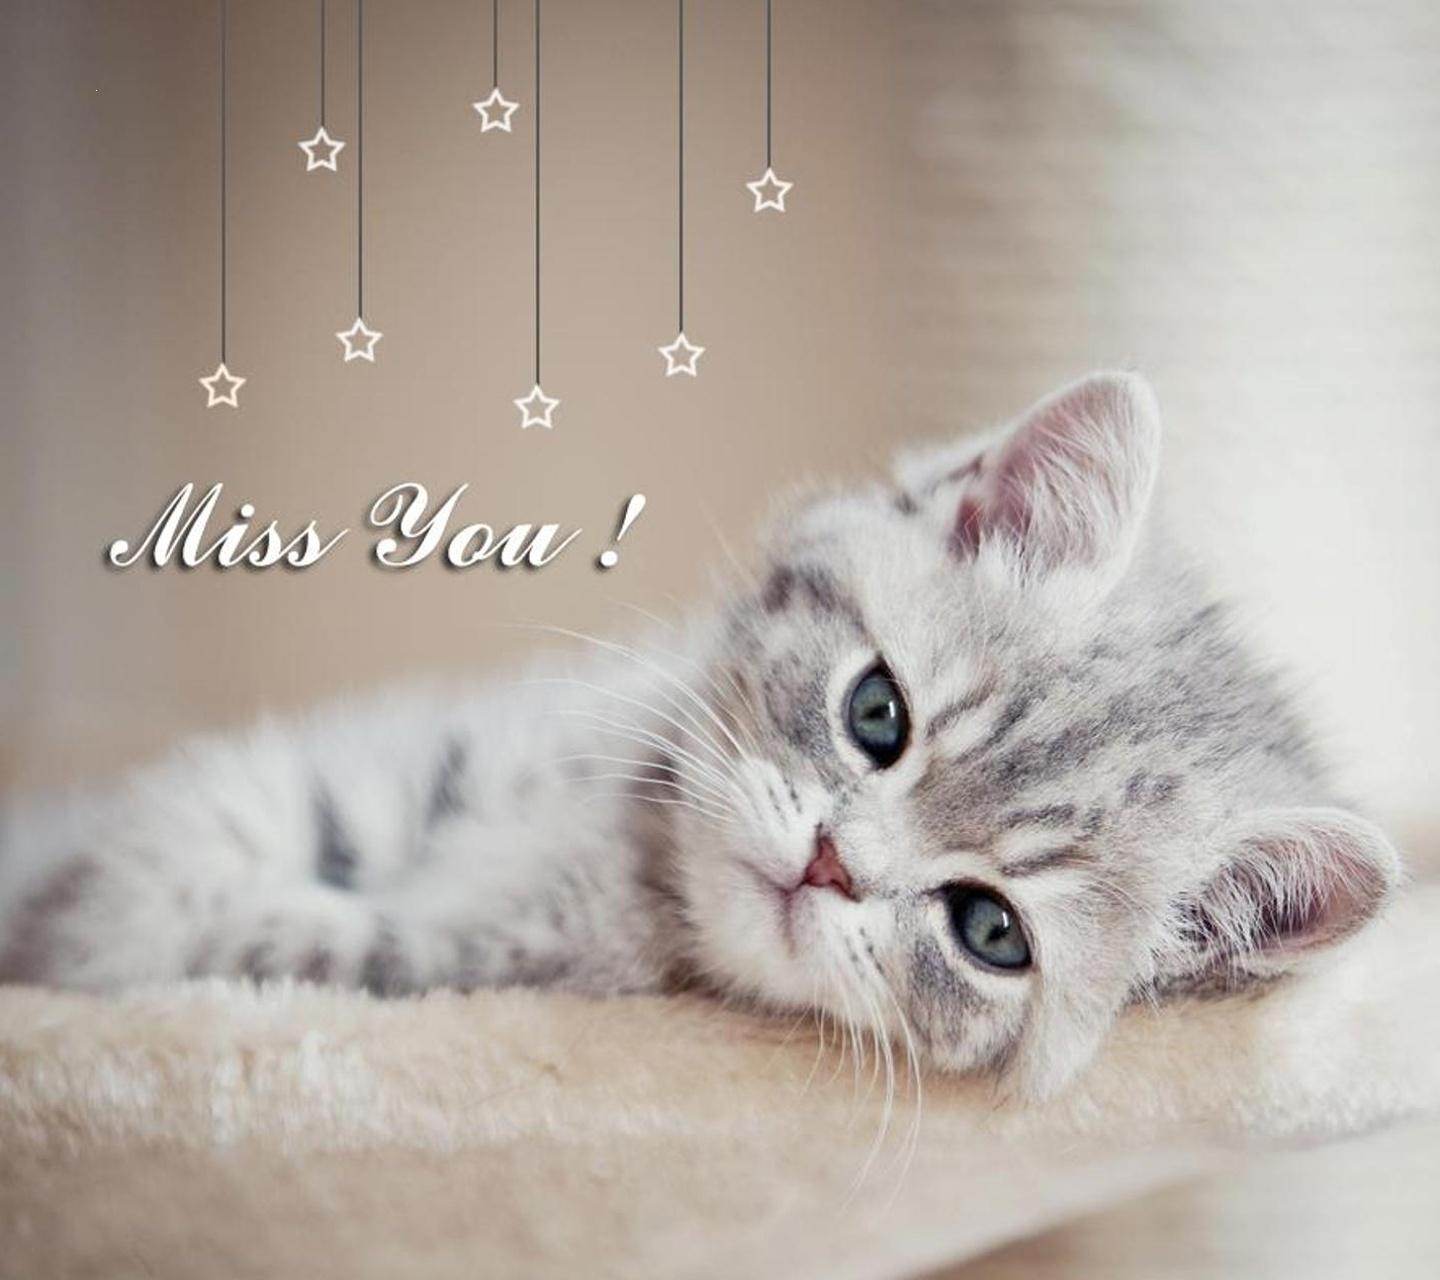 Amazing Cat Wallpaper For Your Phone - 1445068094-sweet-cat-miss-you-file  Gallery_37133 .jpg